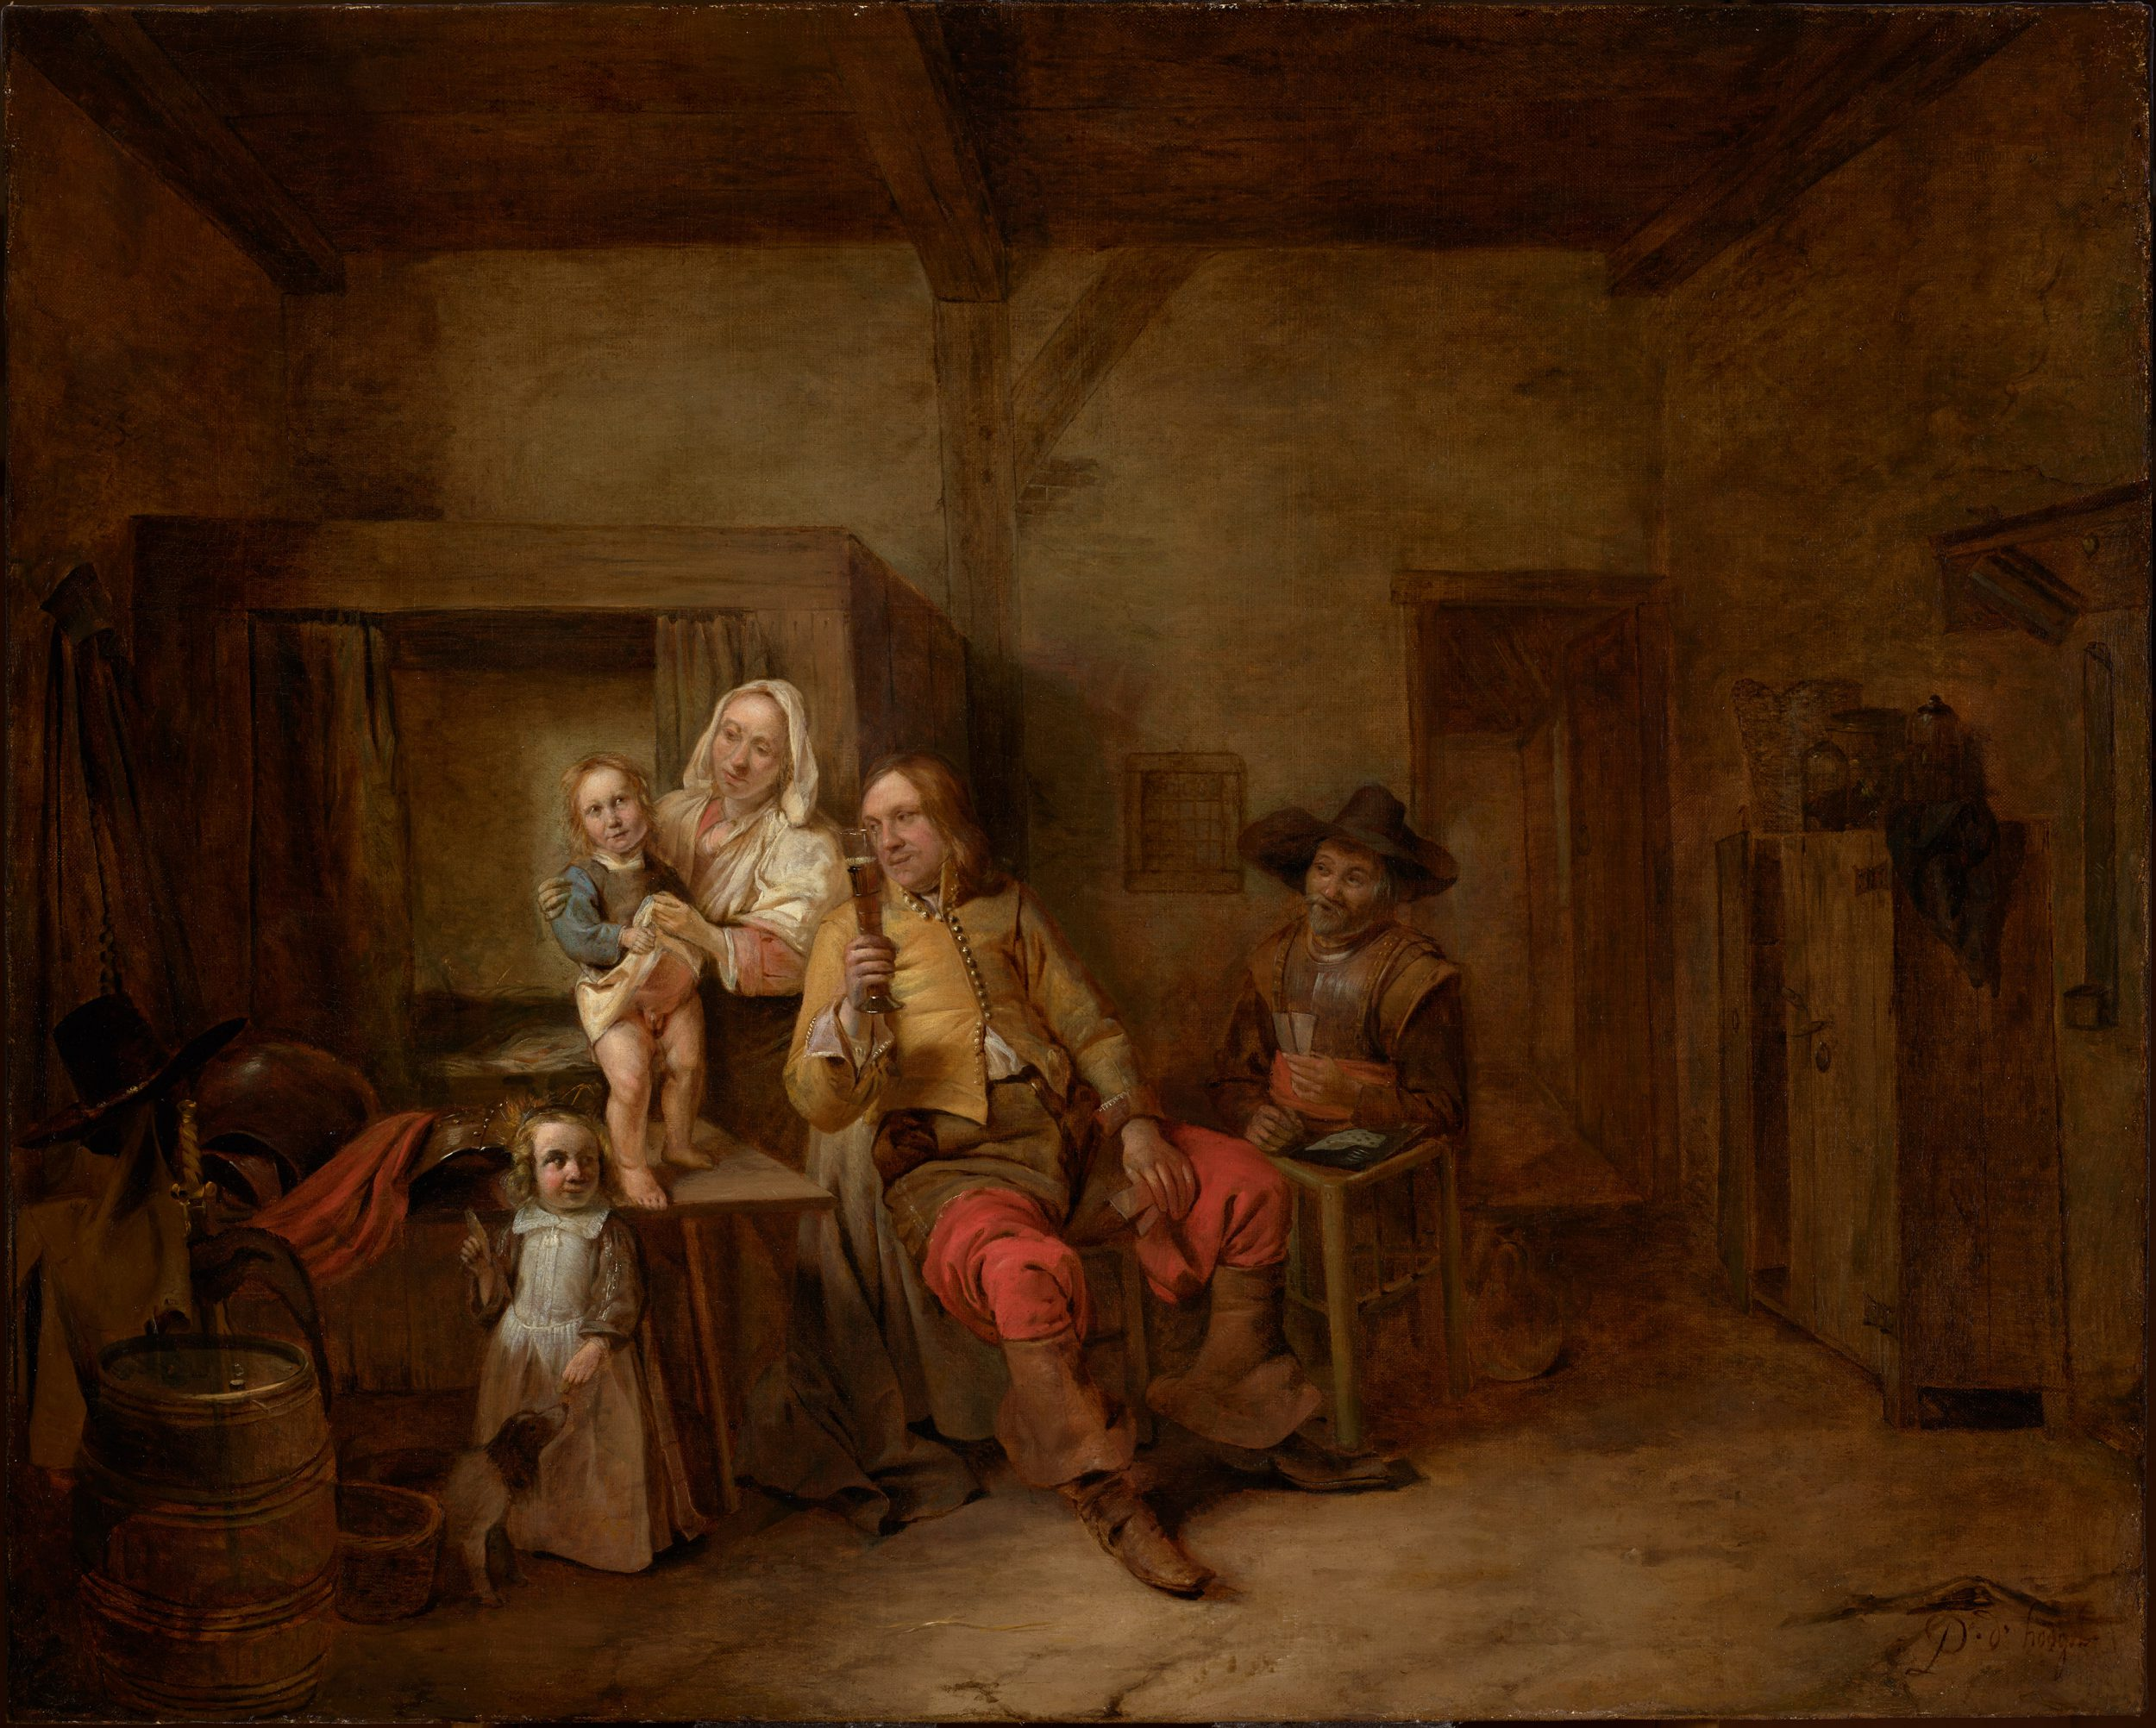 A Soldier and his family in an Interior